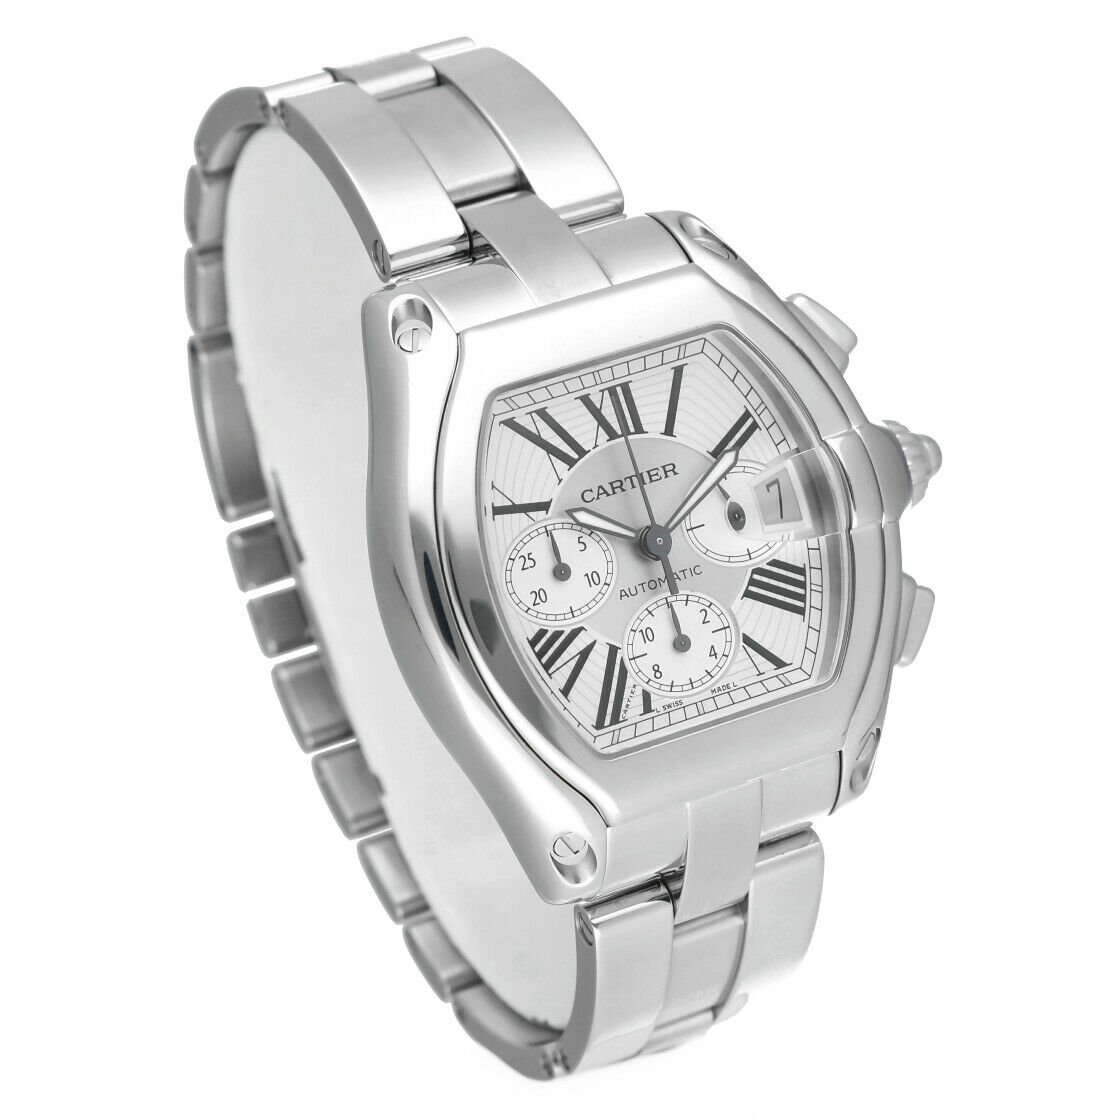 Cartier Roadster 2618 Chronograph XL Silver Dial Stainless Steel Mens Watch 114339442665 4